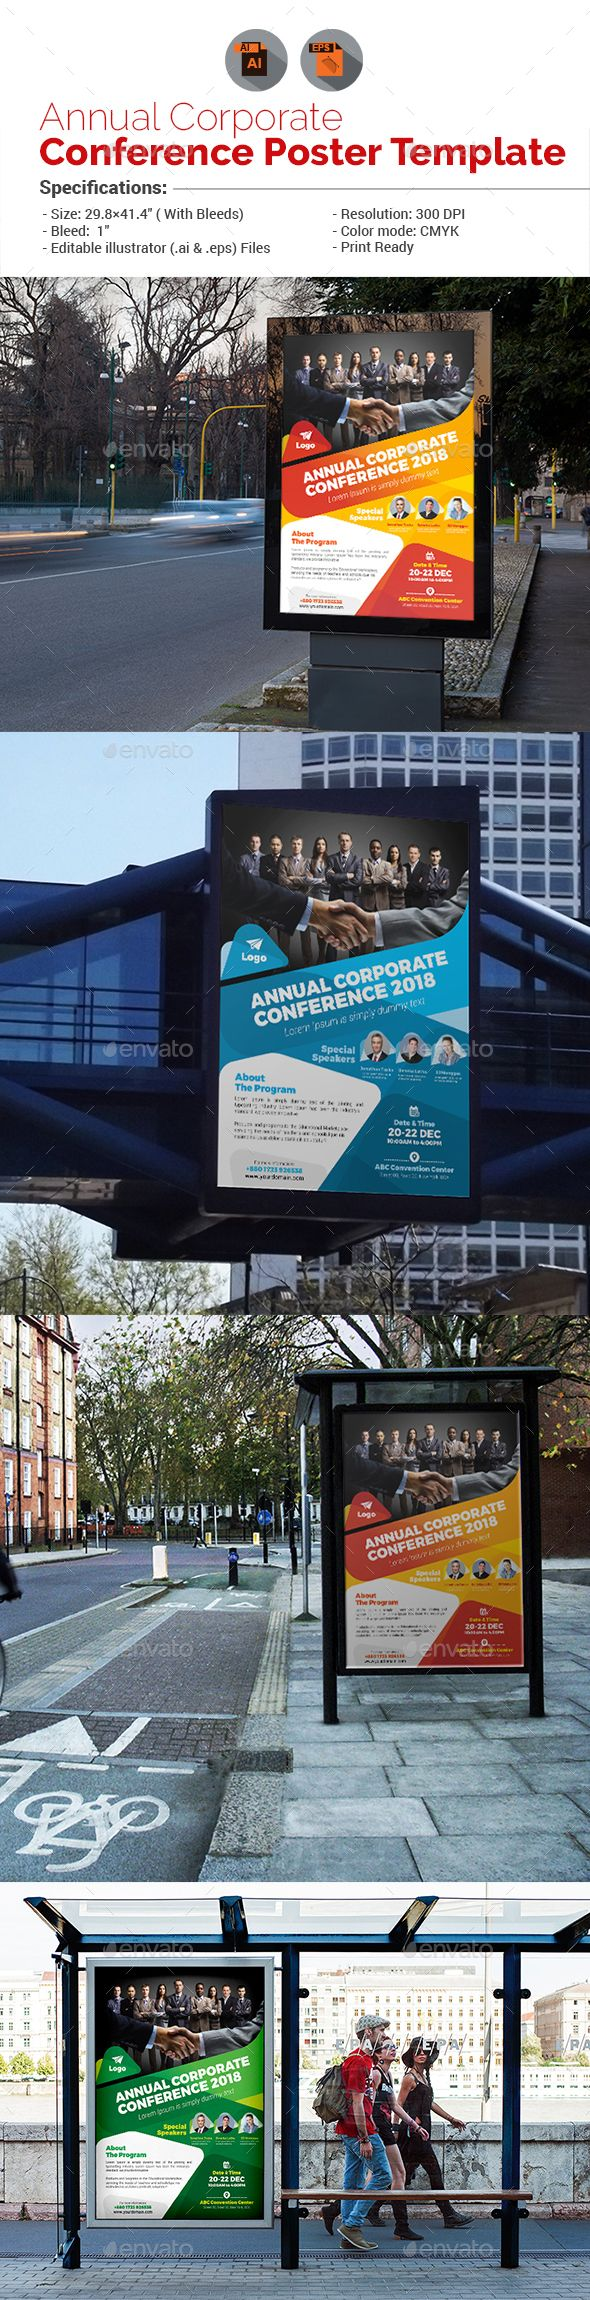 Annual Corporate Conference Poster by aam360 Similar Templates:INFORMATIONS FOR ...